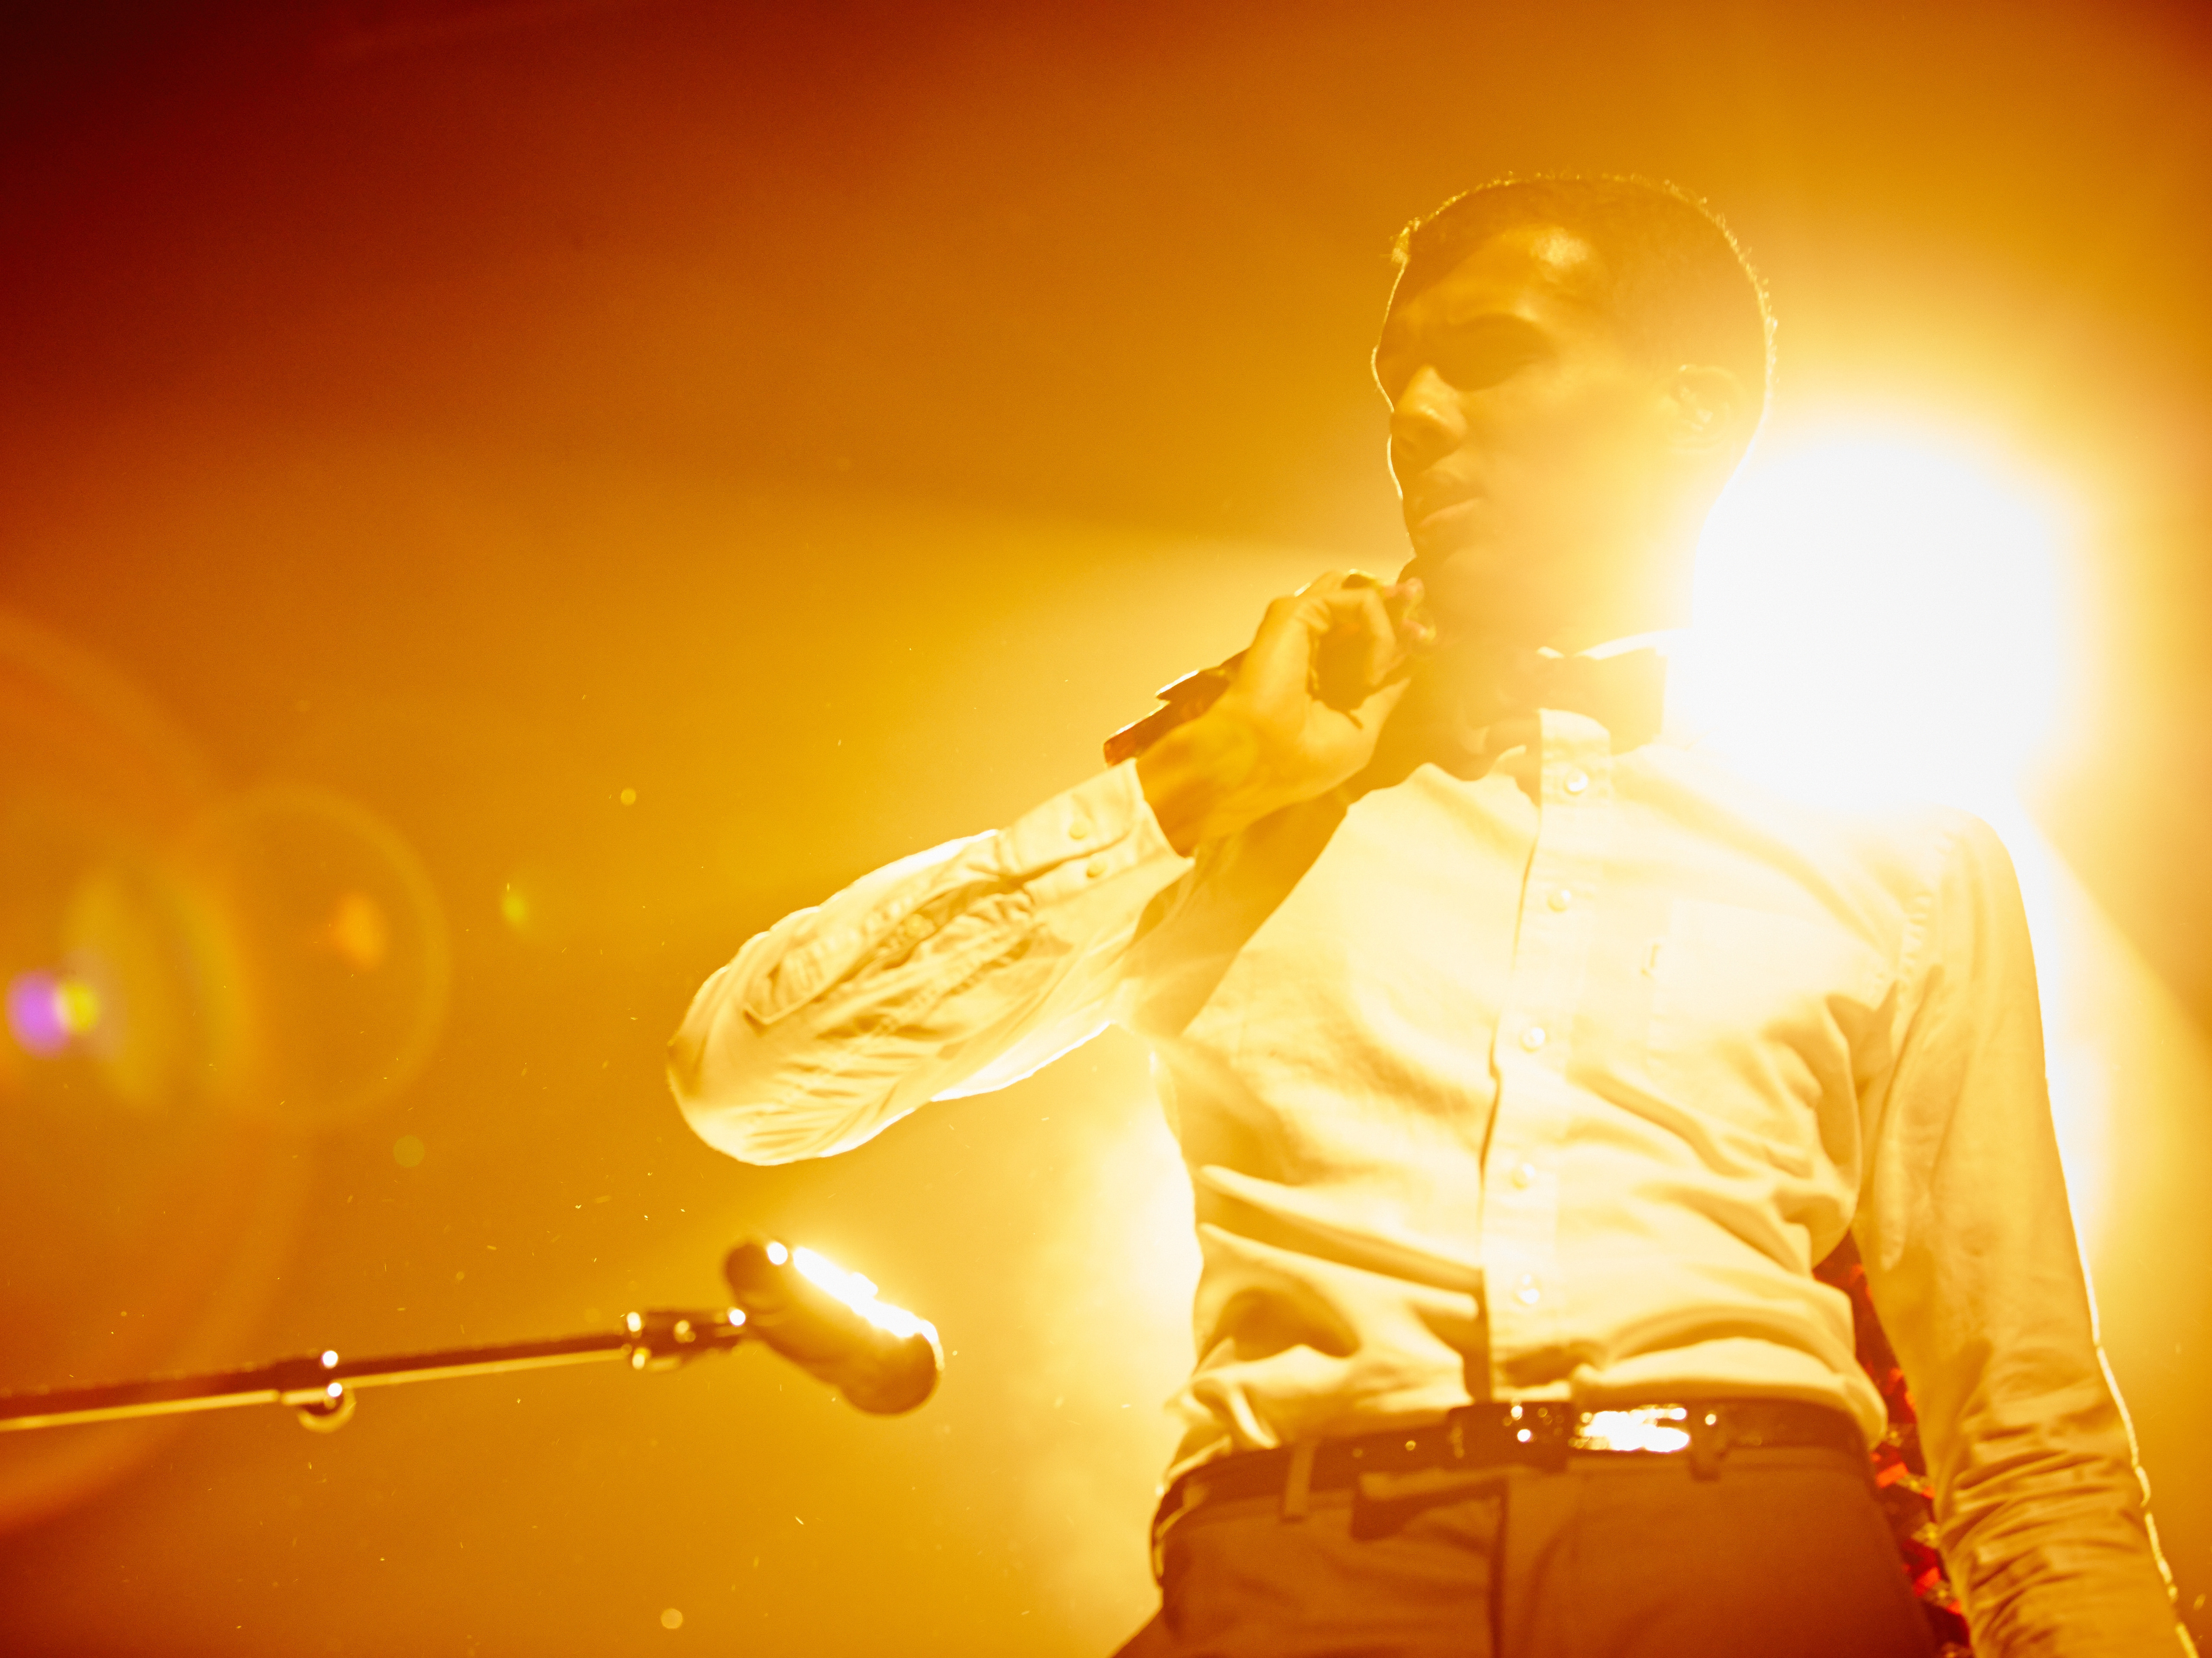 Stromae, Global Star In The Making, Set To Touch Down In The U.S.